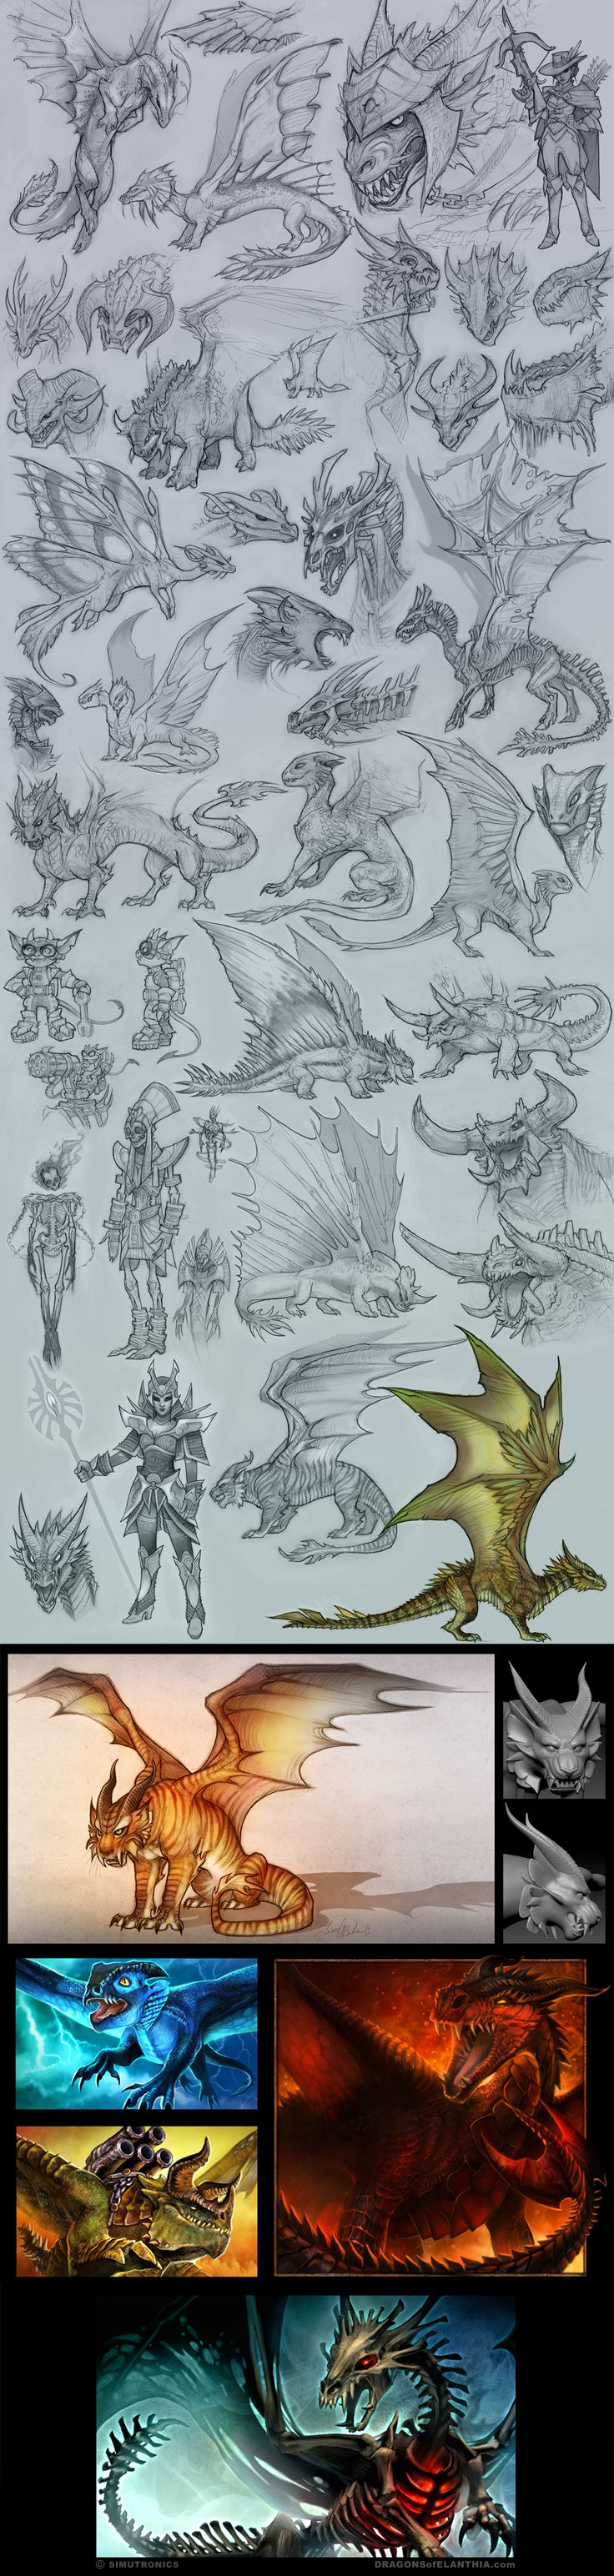 Dragons Dragons Dragons by tracyjb ---- Clearly, someone has more time to draw dragons than I do.